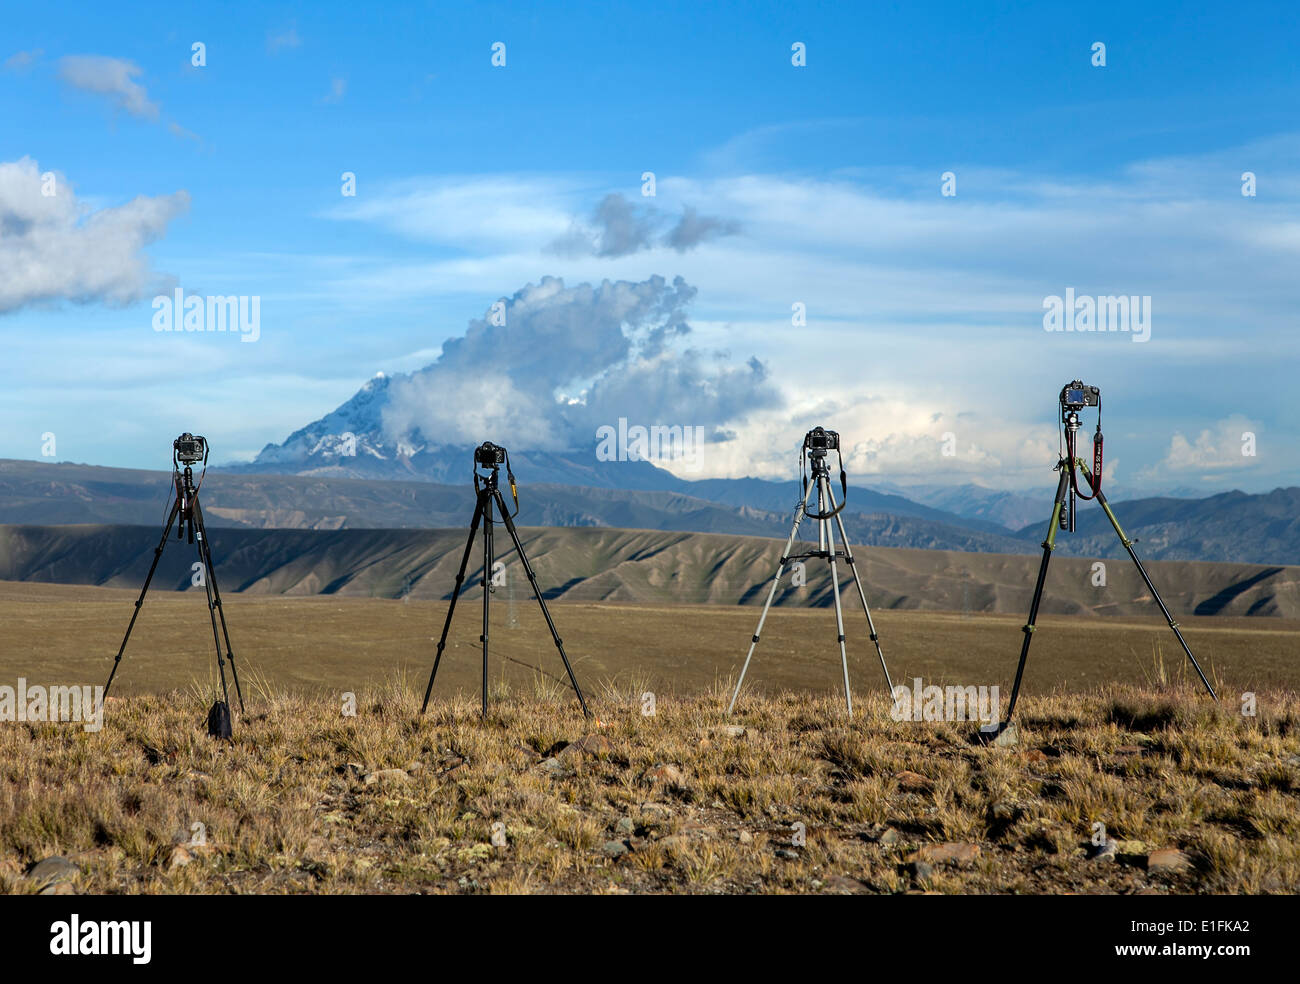 Cameras on tripods. Photography workshop. Bolivia - Stock Image